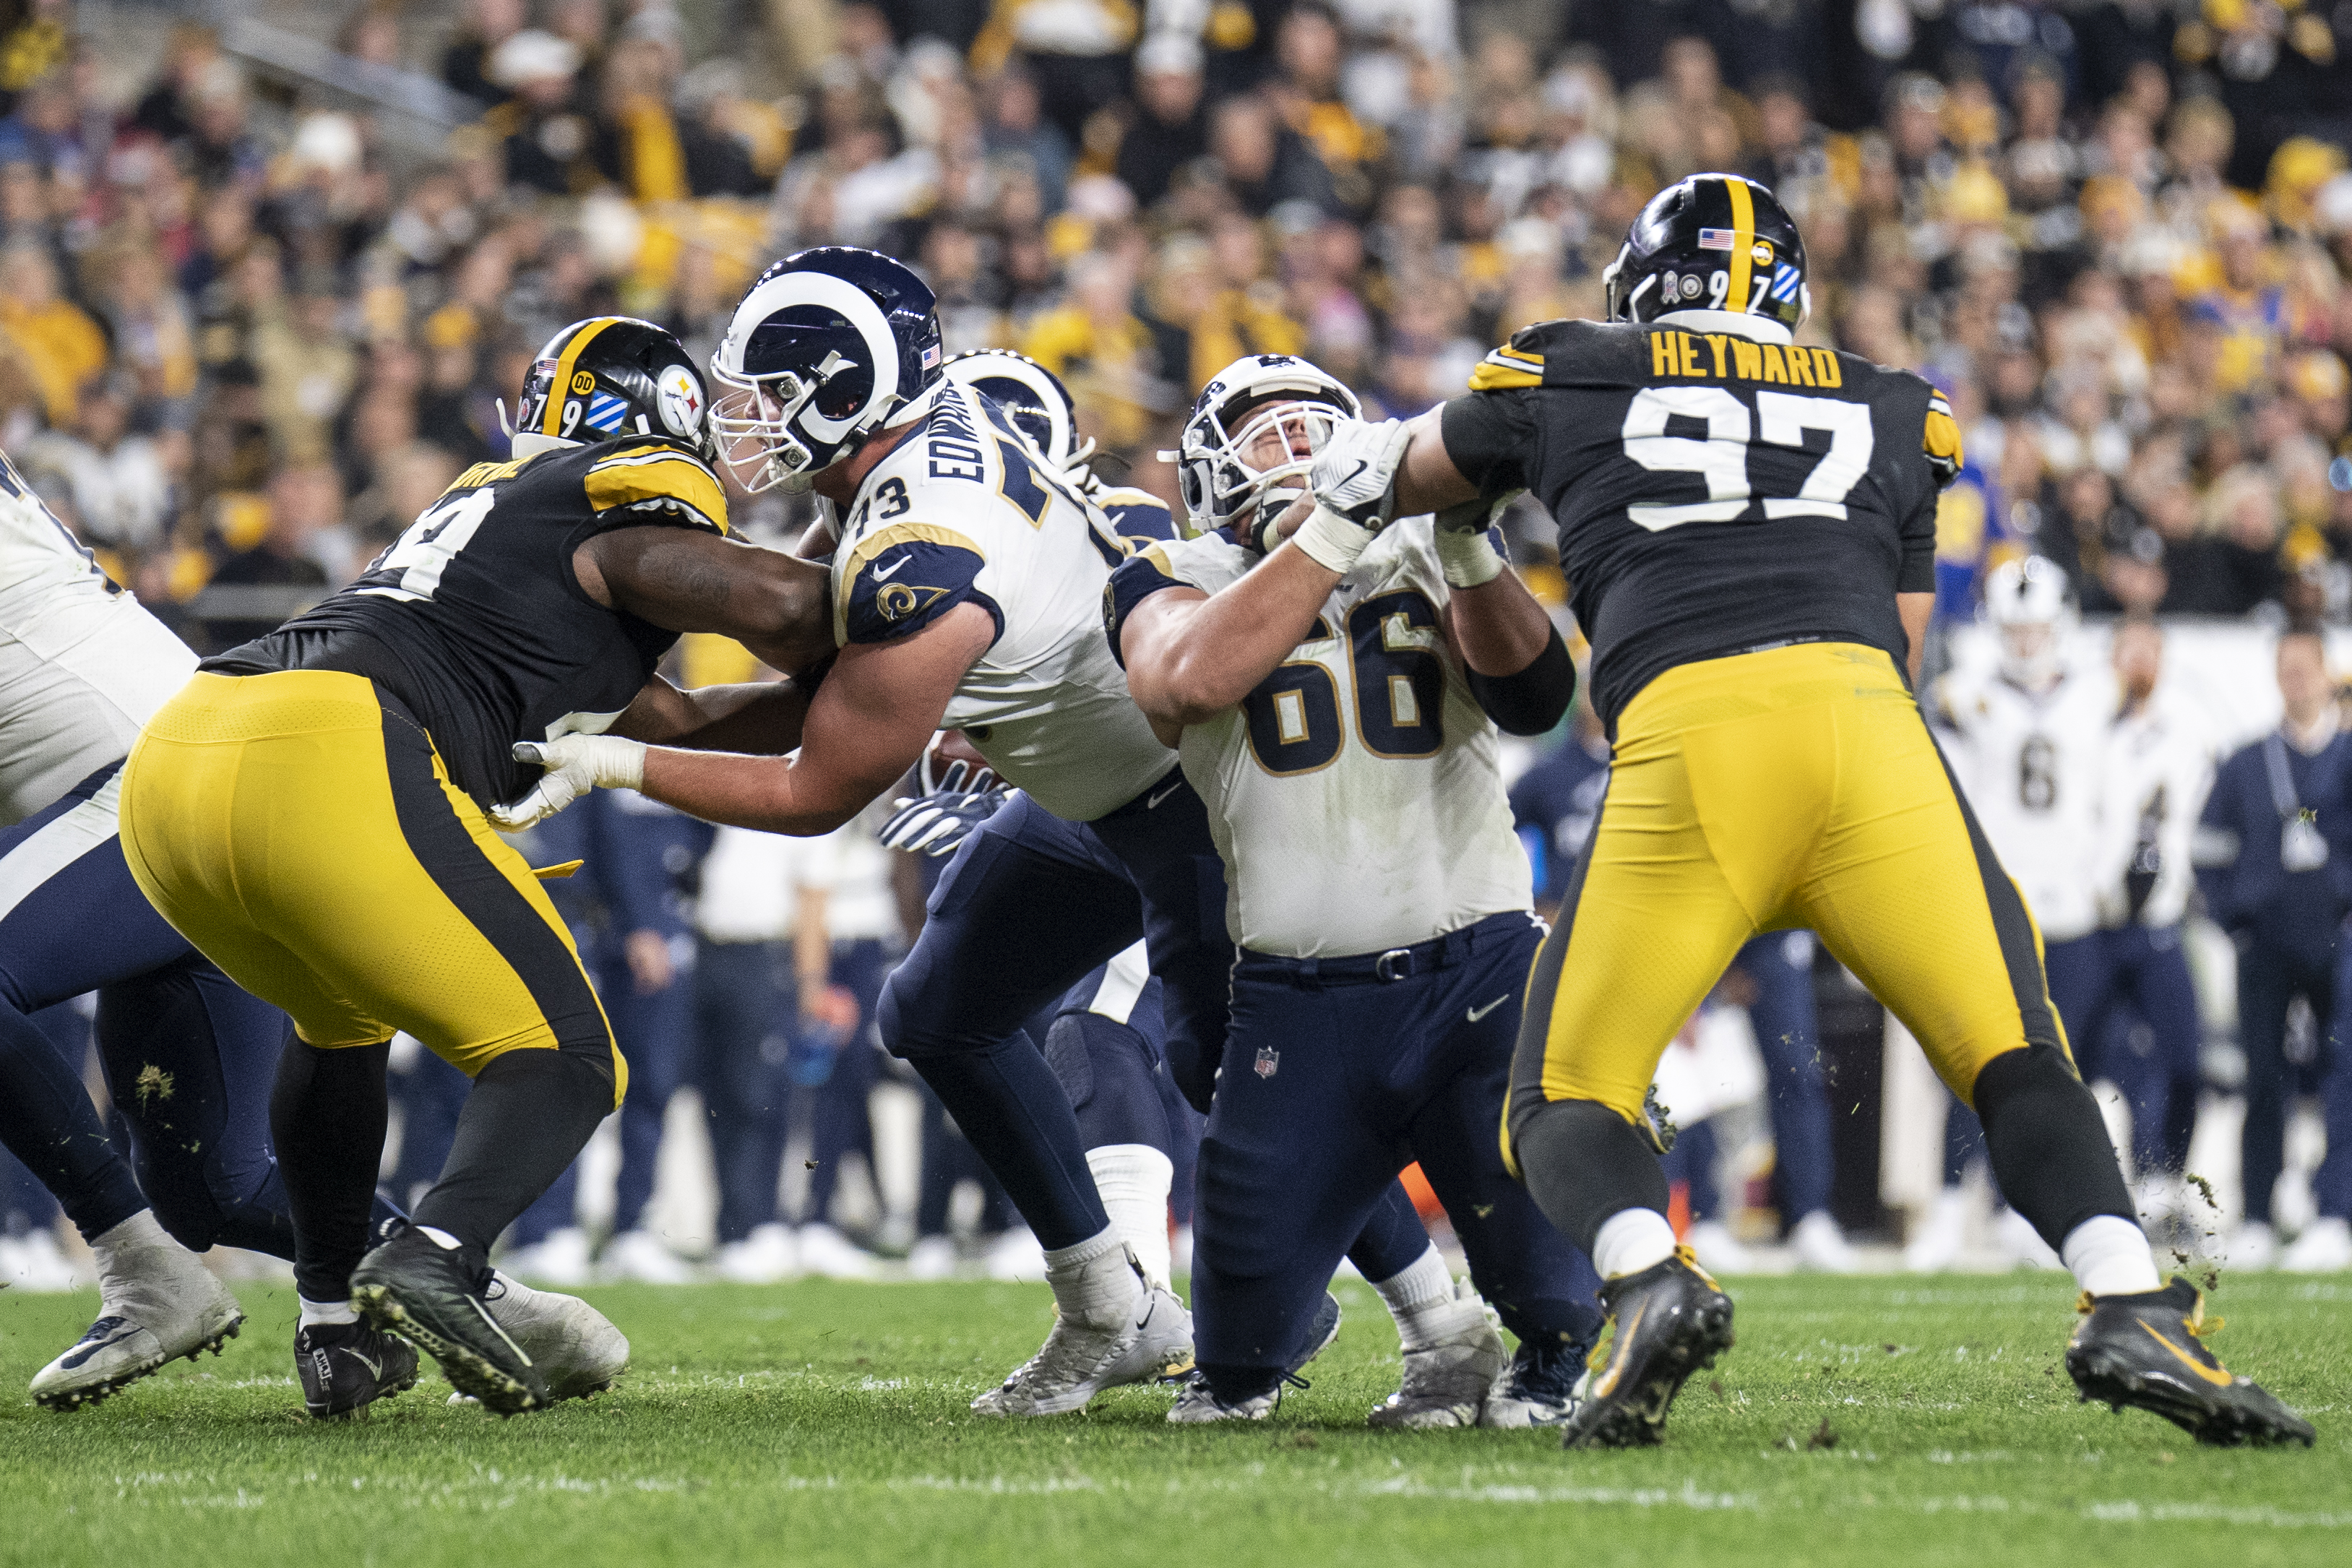 The Los Angeles Rams' offensive line collapses against the Pittsburgh Steelers in Week 10, Nov. 10, 2019.